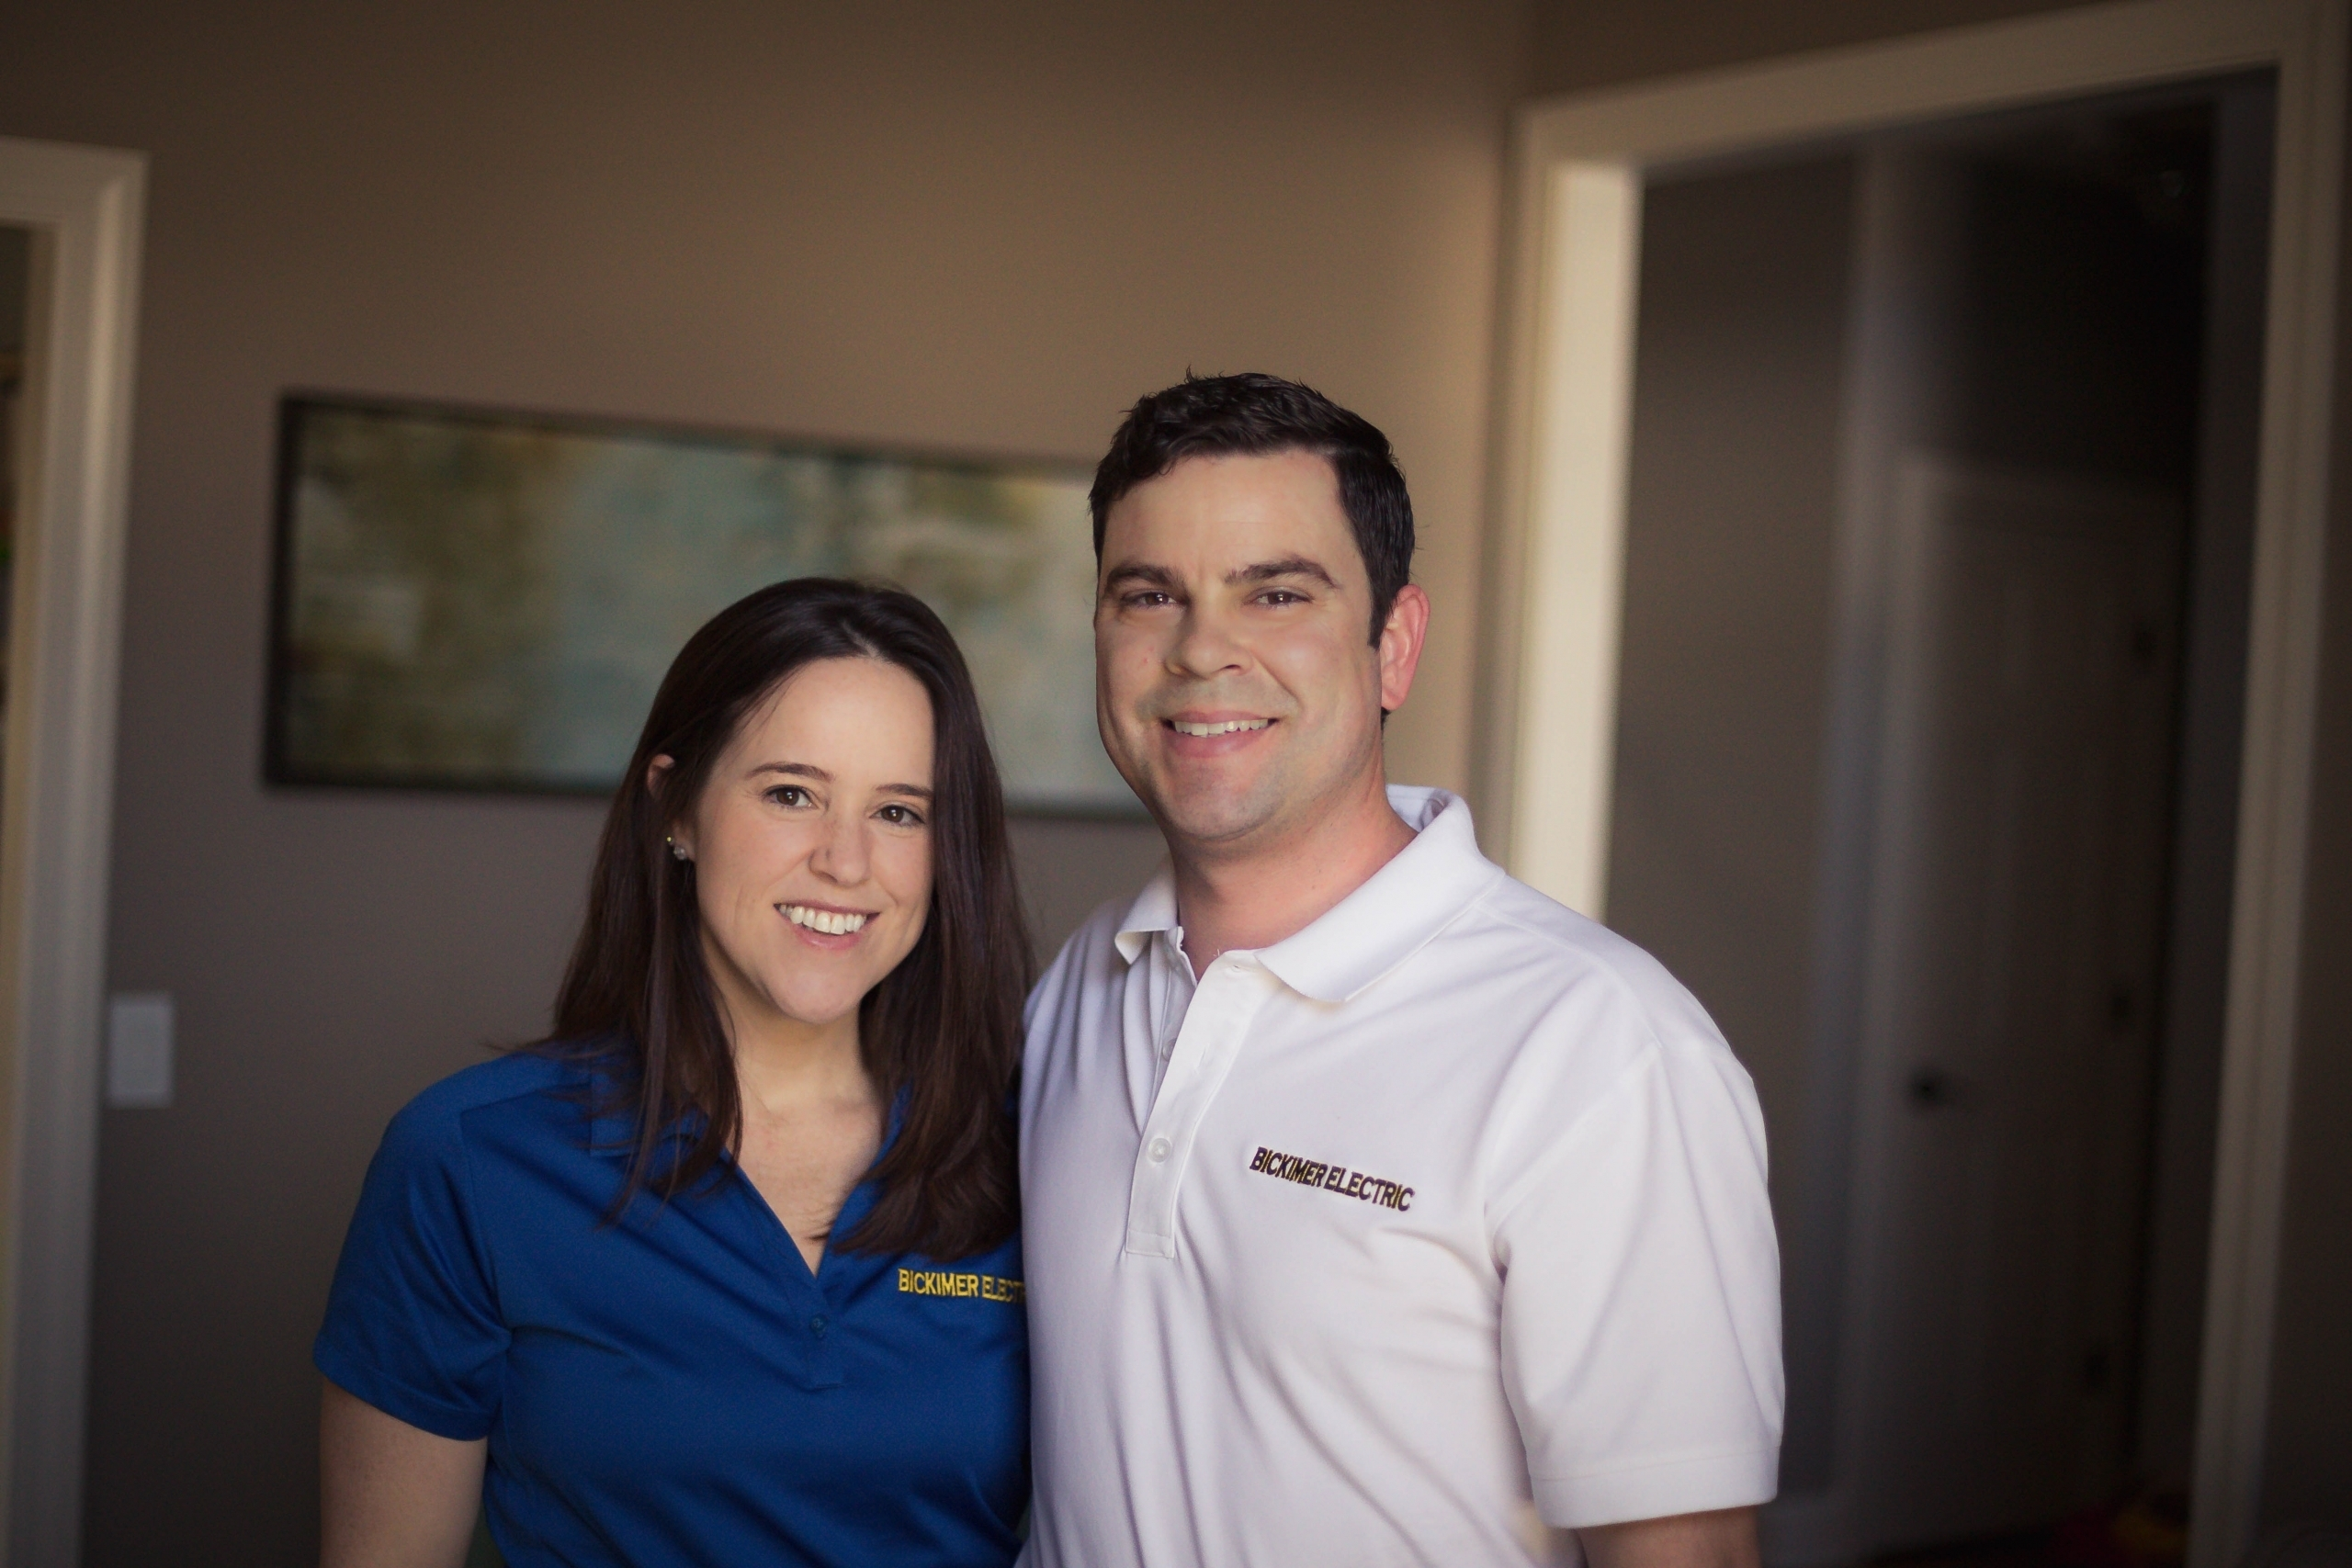 Bickimer Electric Owners Mike and Melissa Bickimer